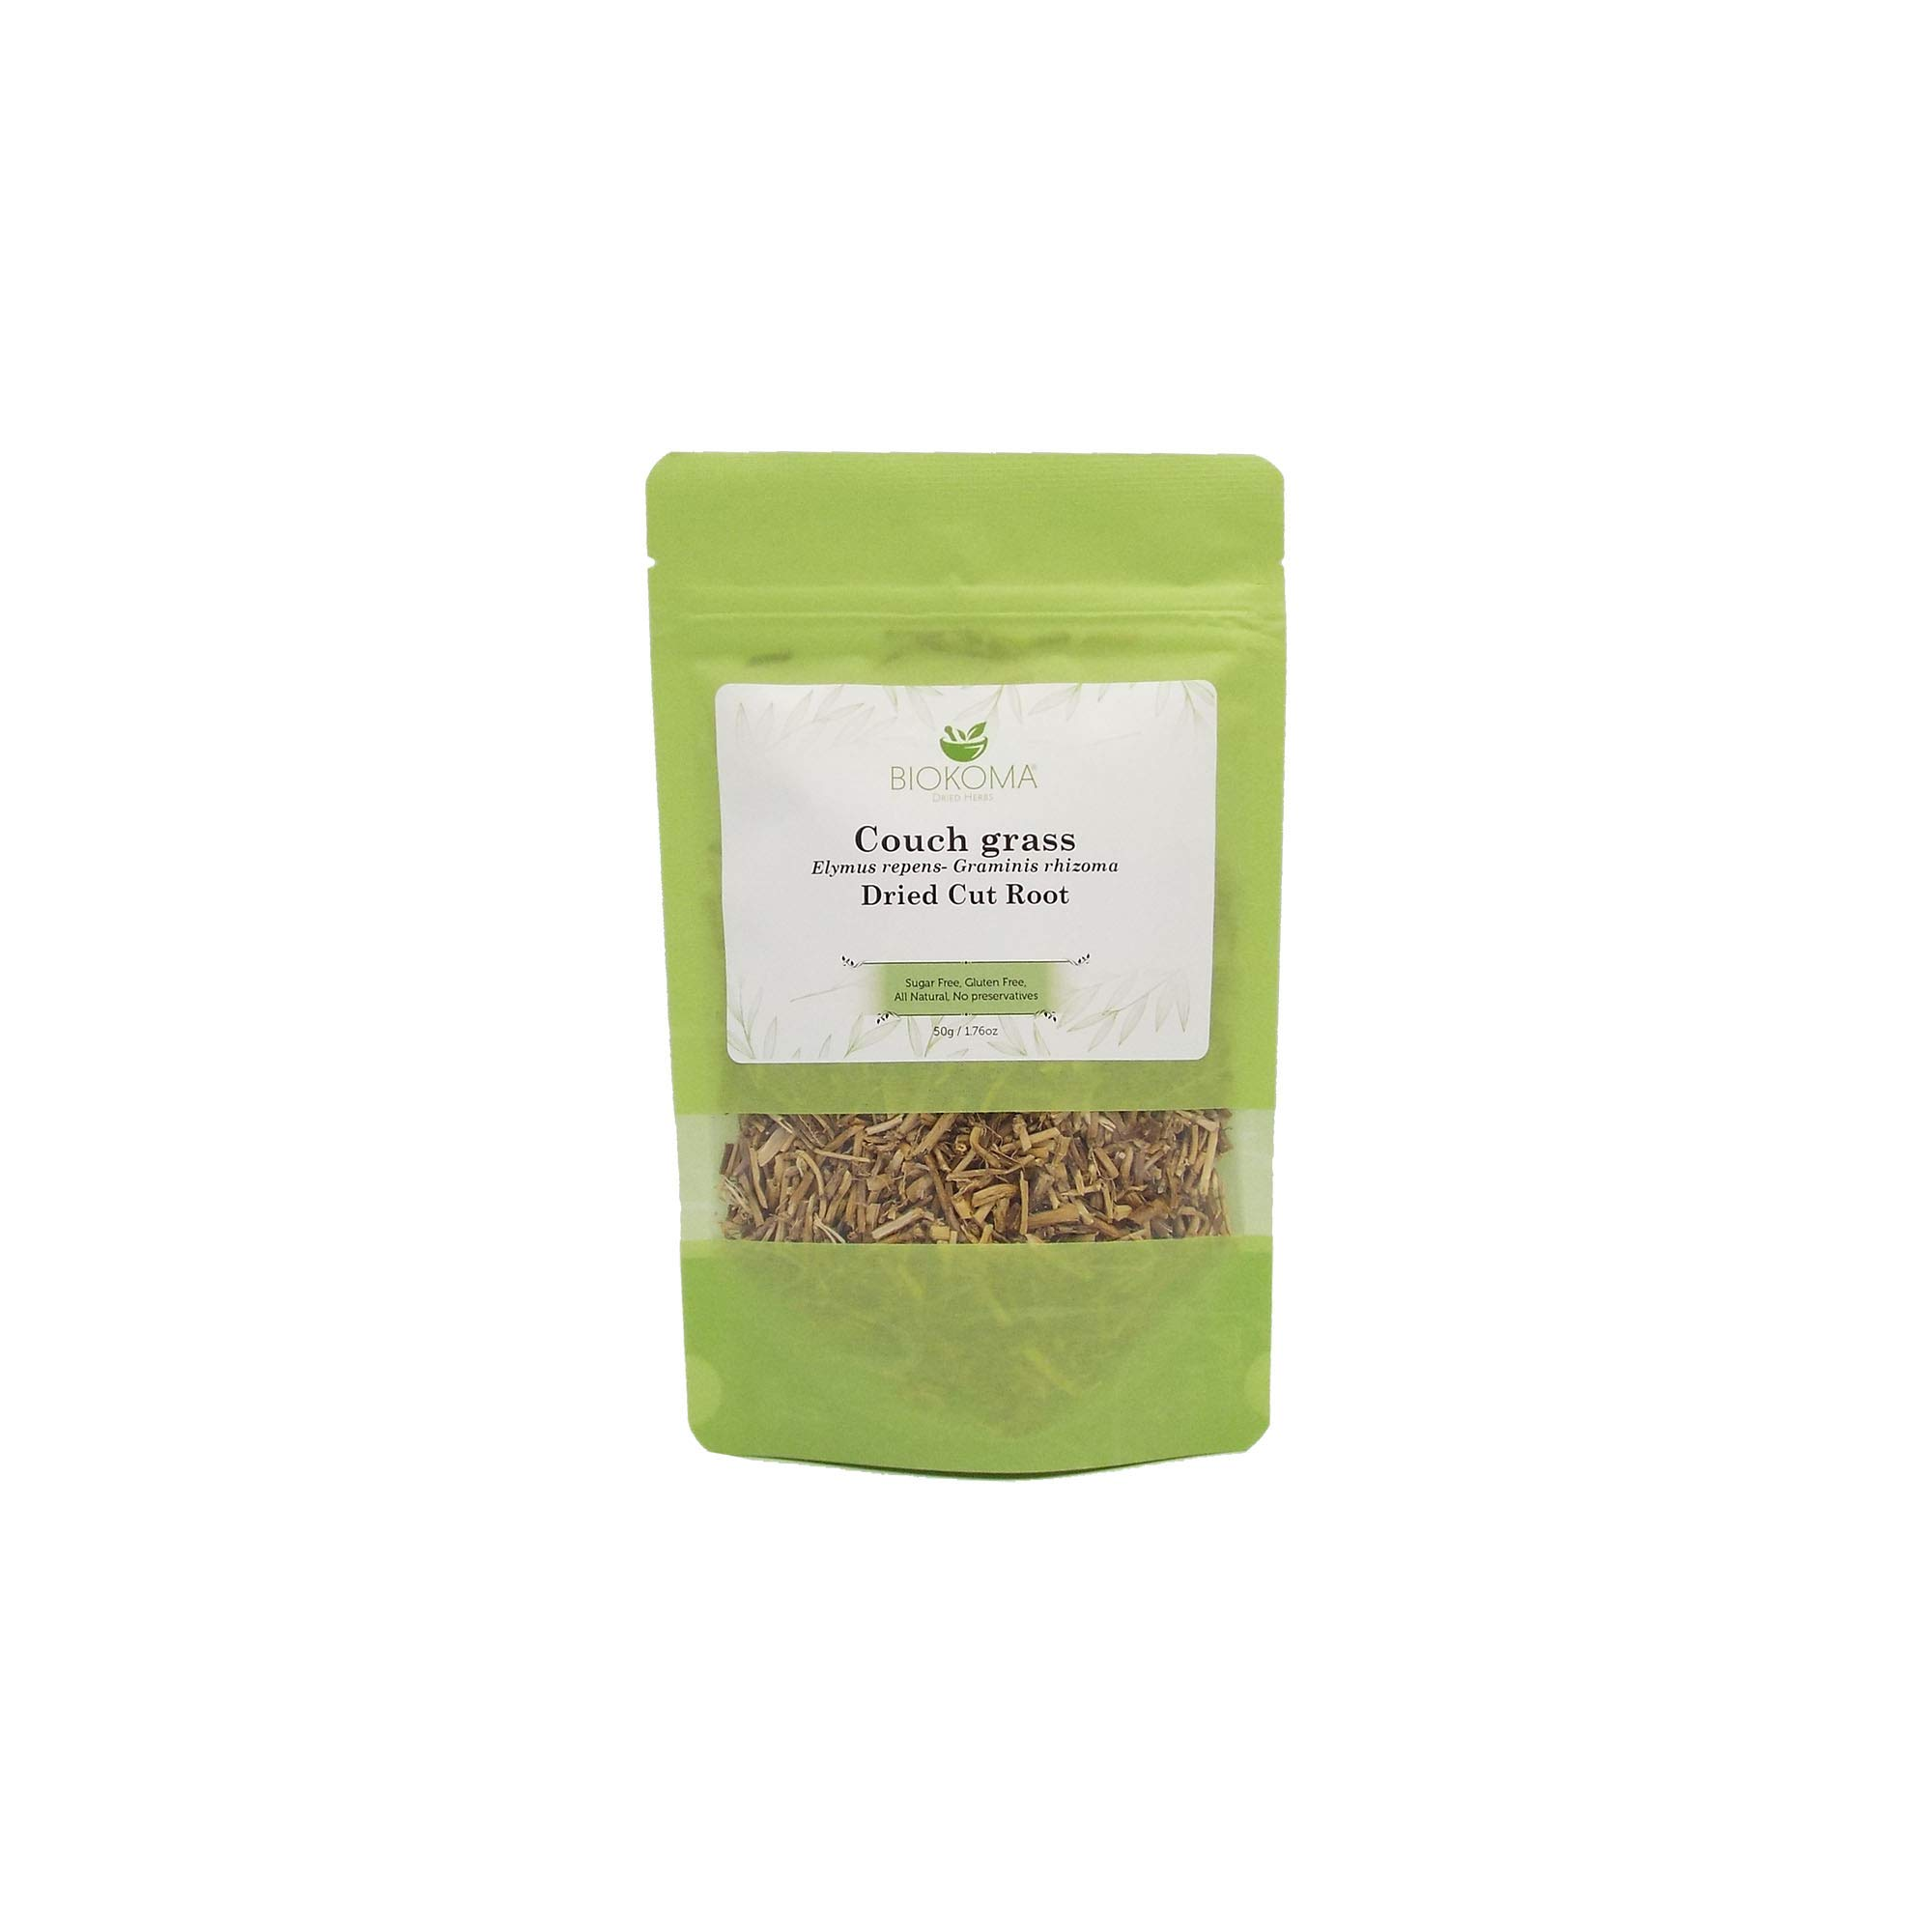 100% Pure and Organic Biokoma Couch Grass Dried Cut Root 50g (1.76oz) in Resealable Moisture Proof Pouch